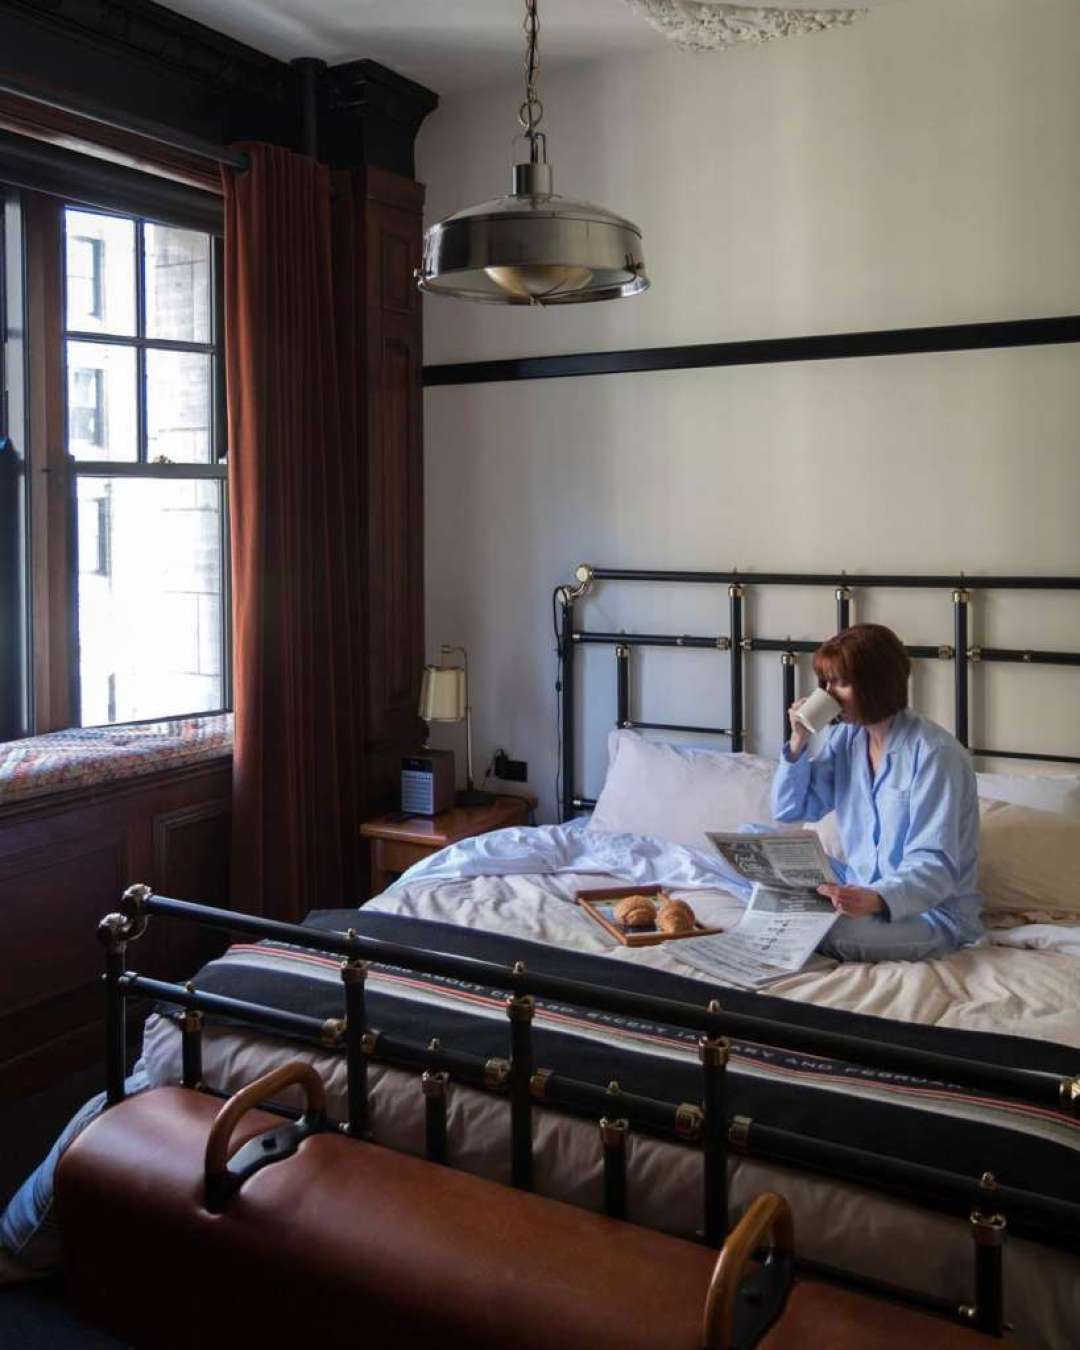 Where To Rent A Room For The Ultimate Chicago Staycation